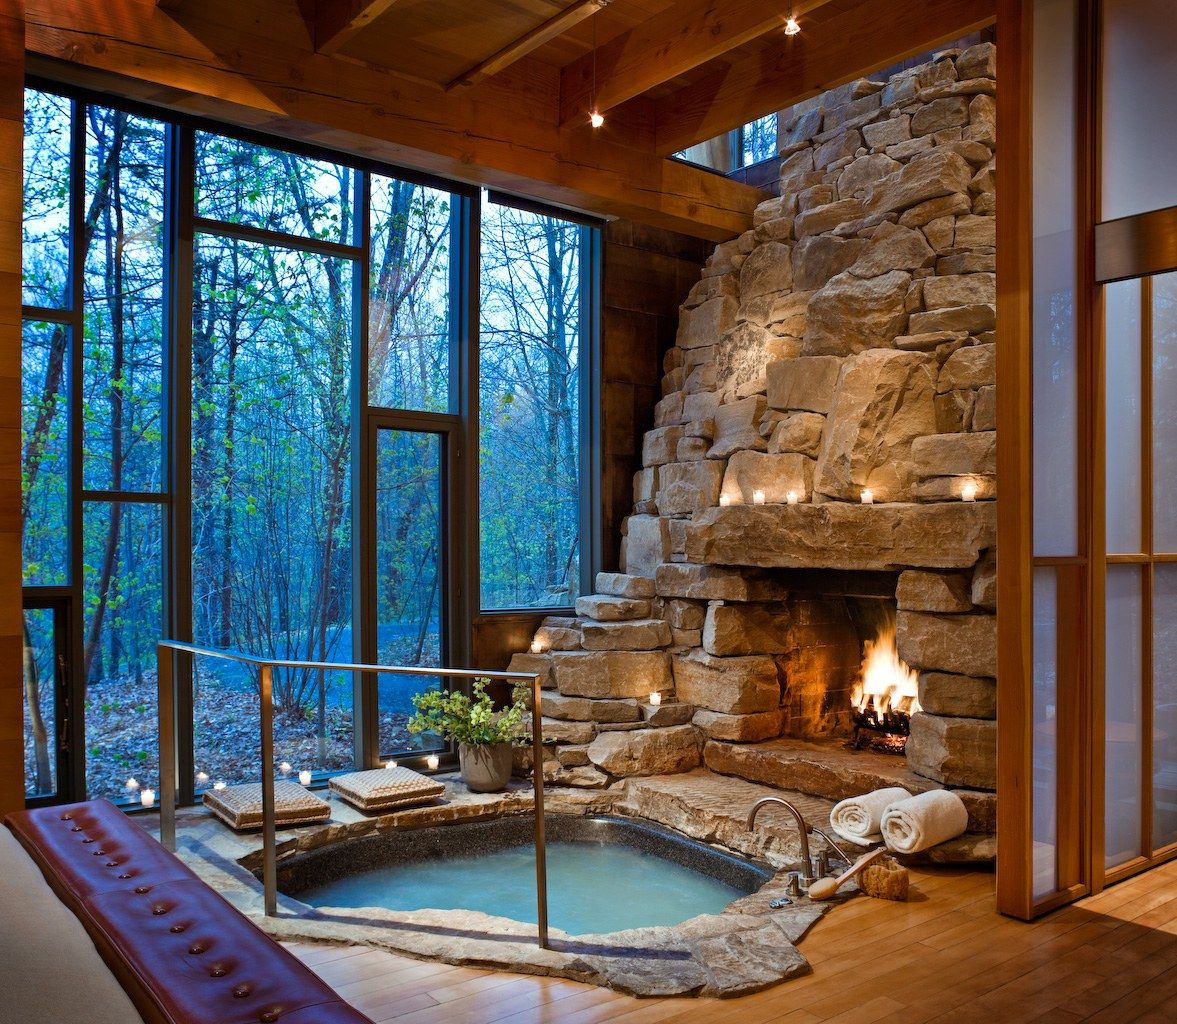 The World S Most Beautiful Hotel Rooms With Fireplaces Indoor Hot Tub Dream House My Dream Home